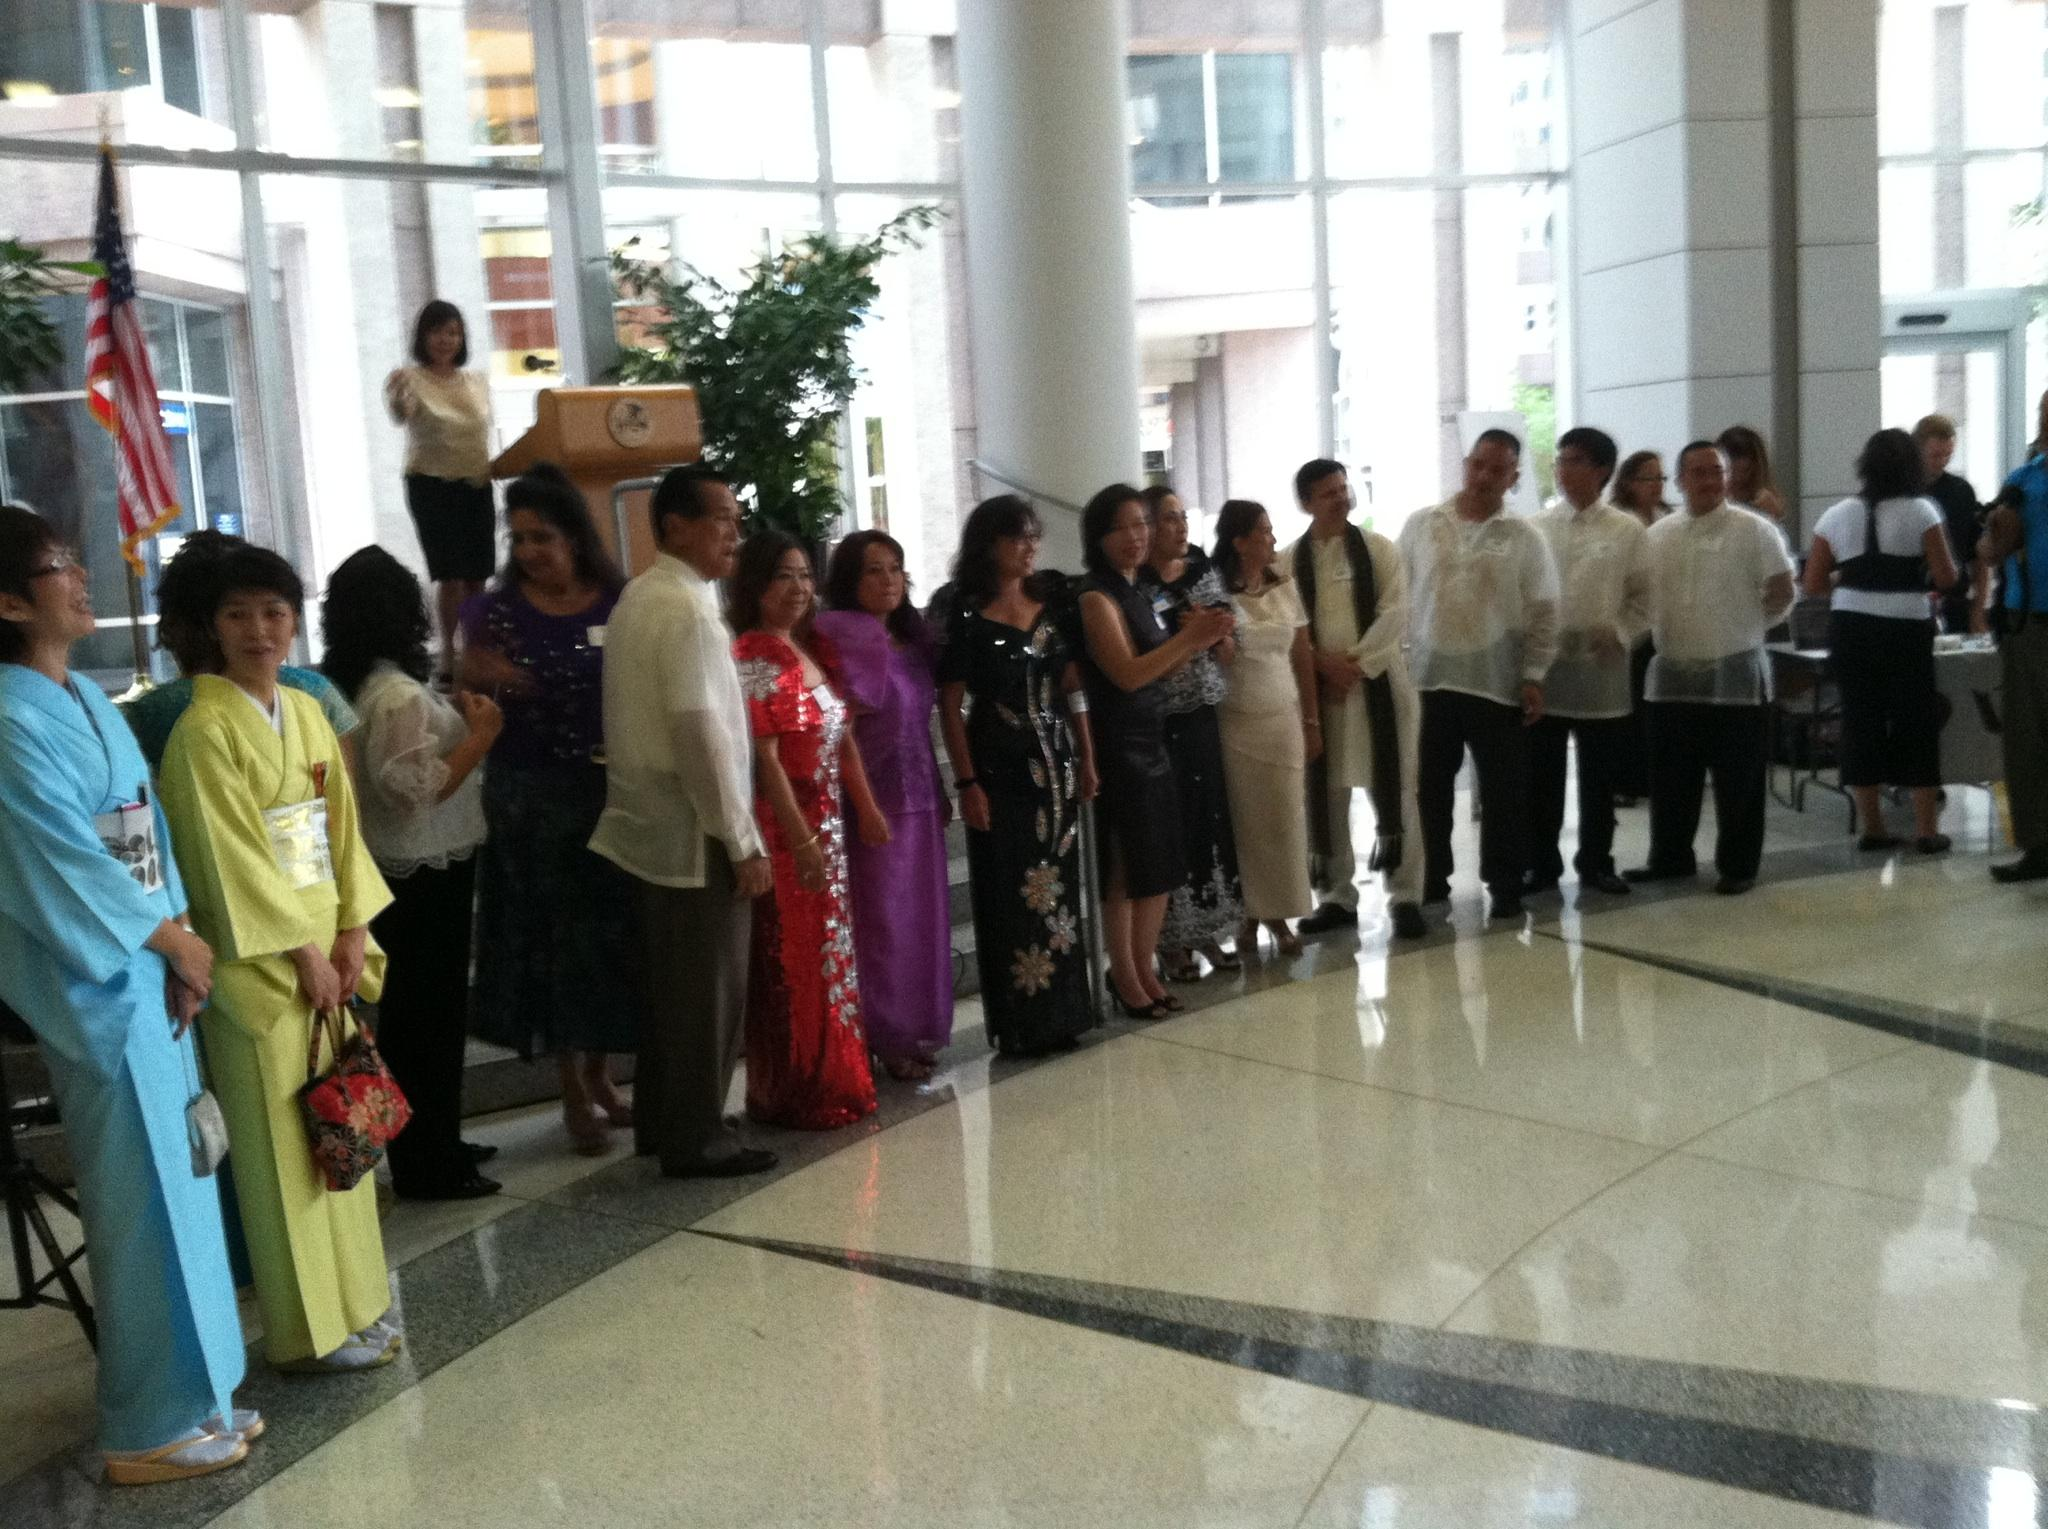 aacc_asianheritageevent_orlandocityhall_may2012-3